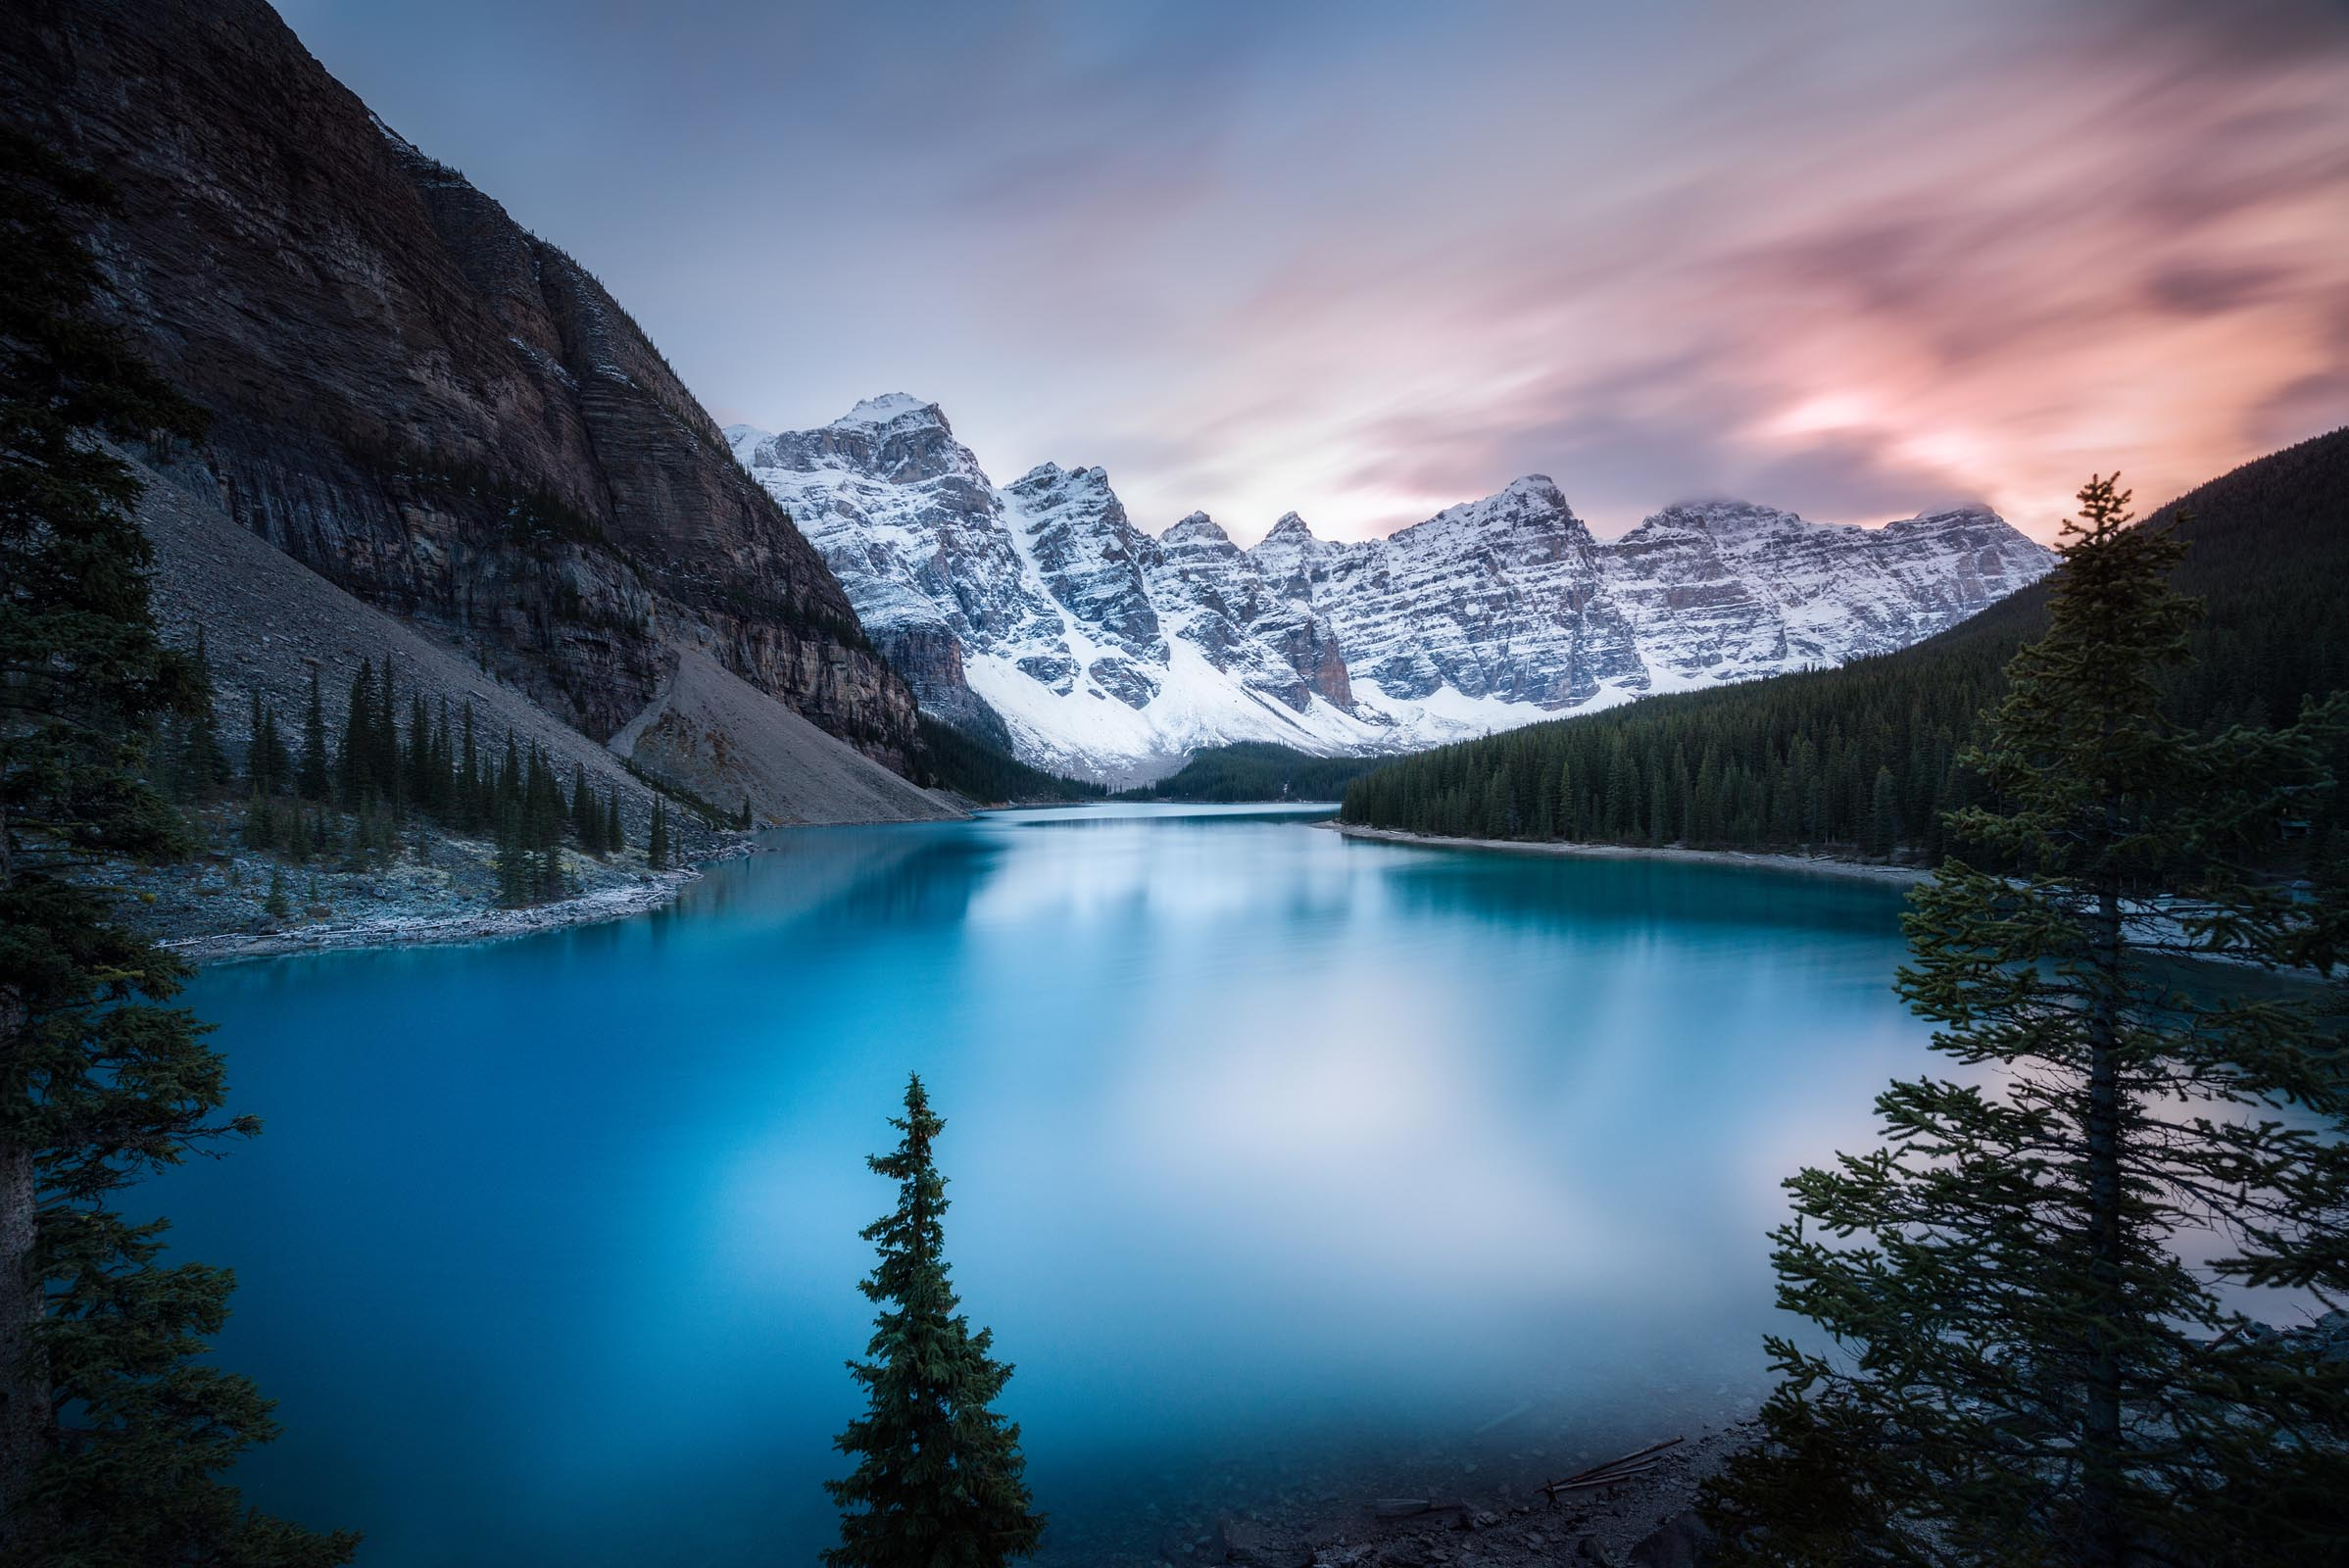 Photograph of Moraine Lake in Banff, Canada by Brent Goldman Photography